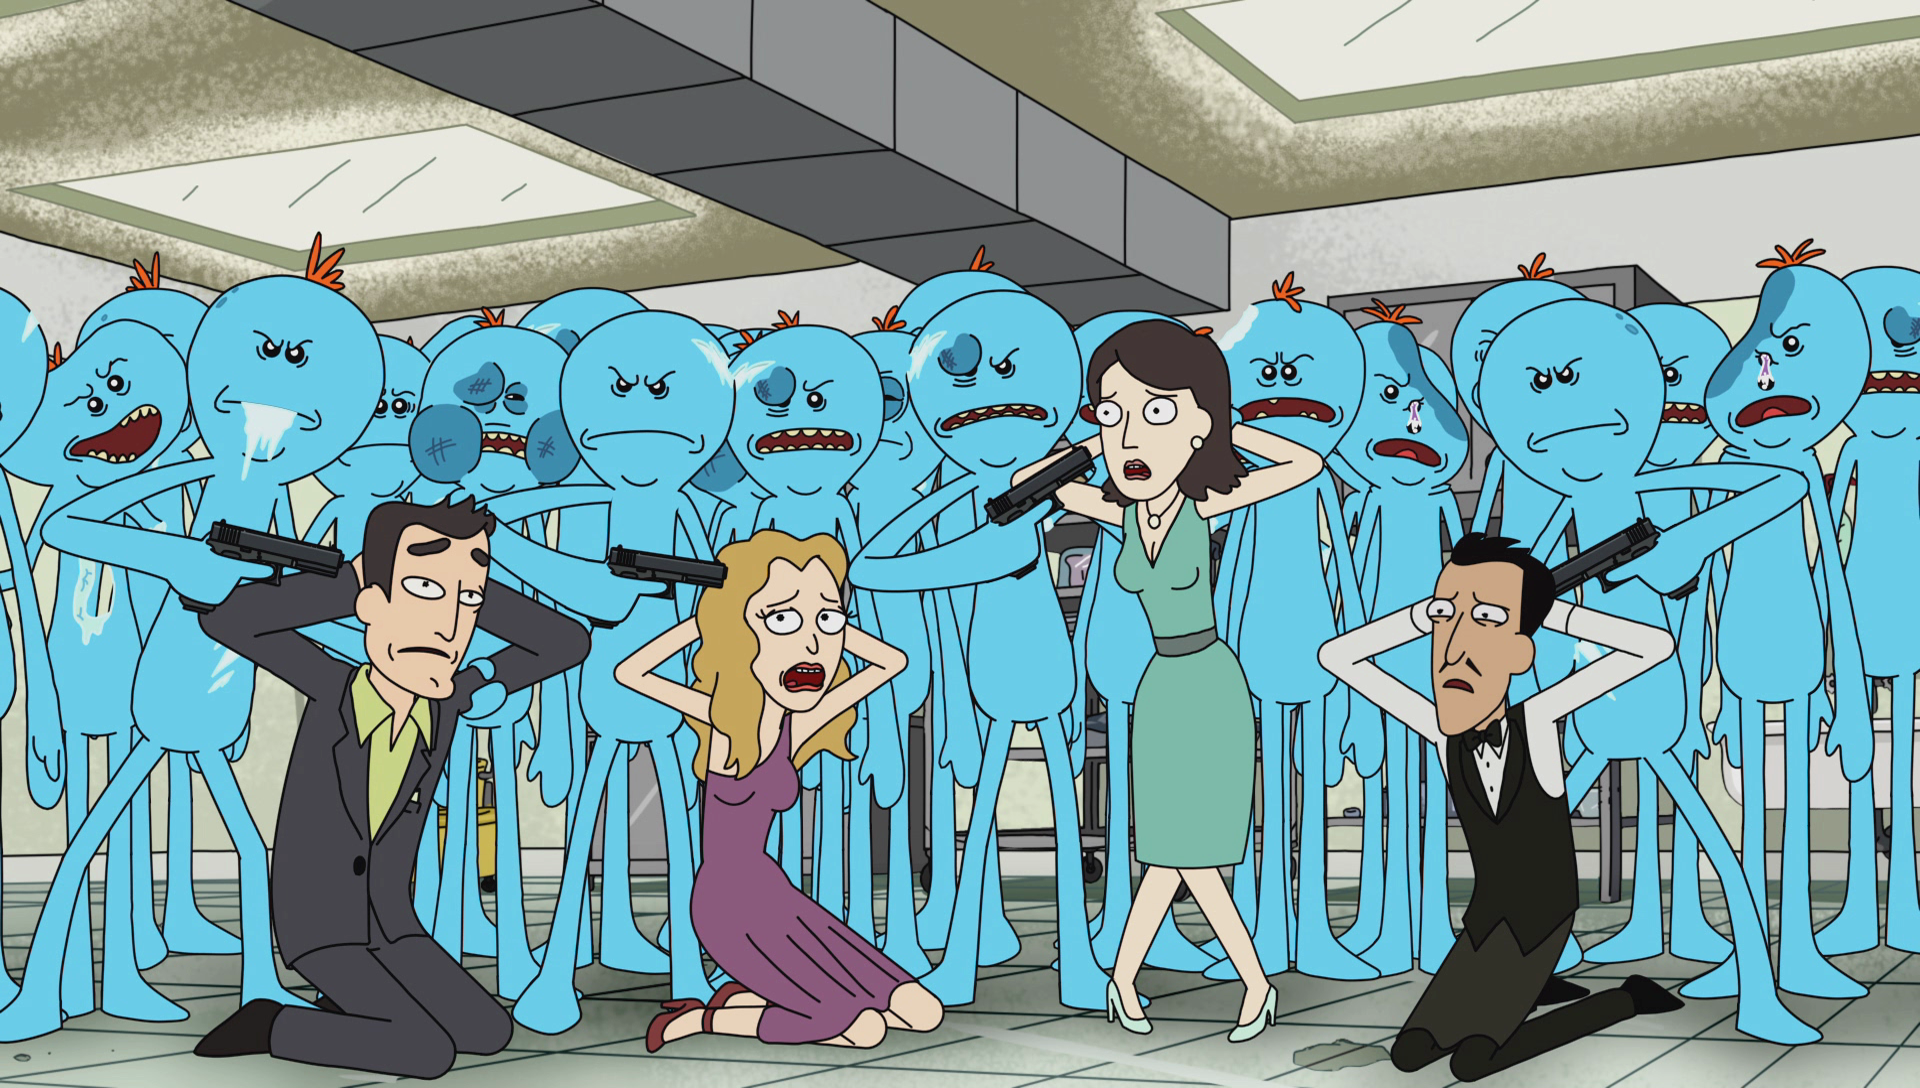 Meeseeks and Destroy | Rick and Morty Wiki | FANDOM powered by Wikia